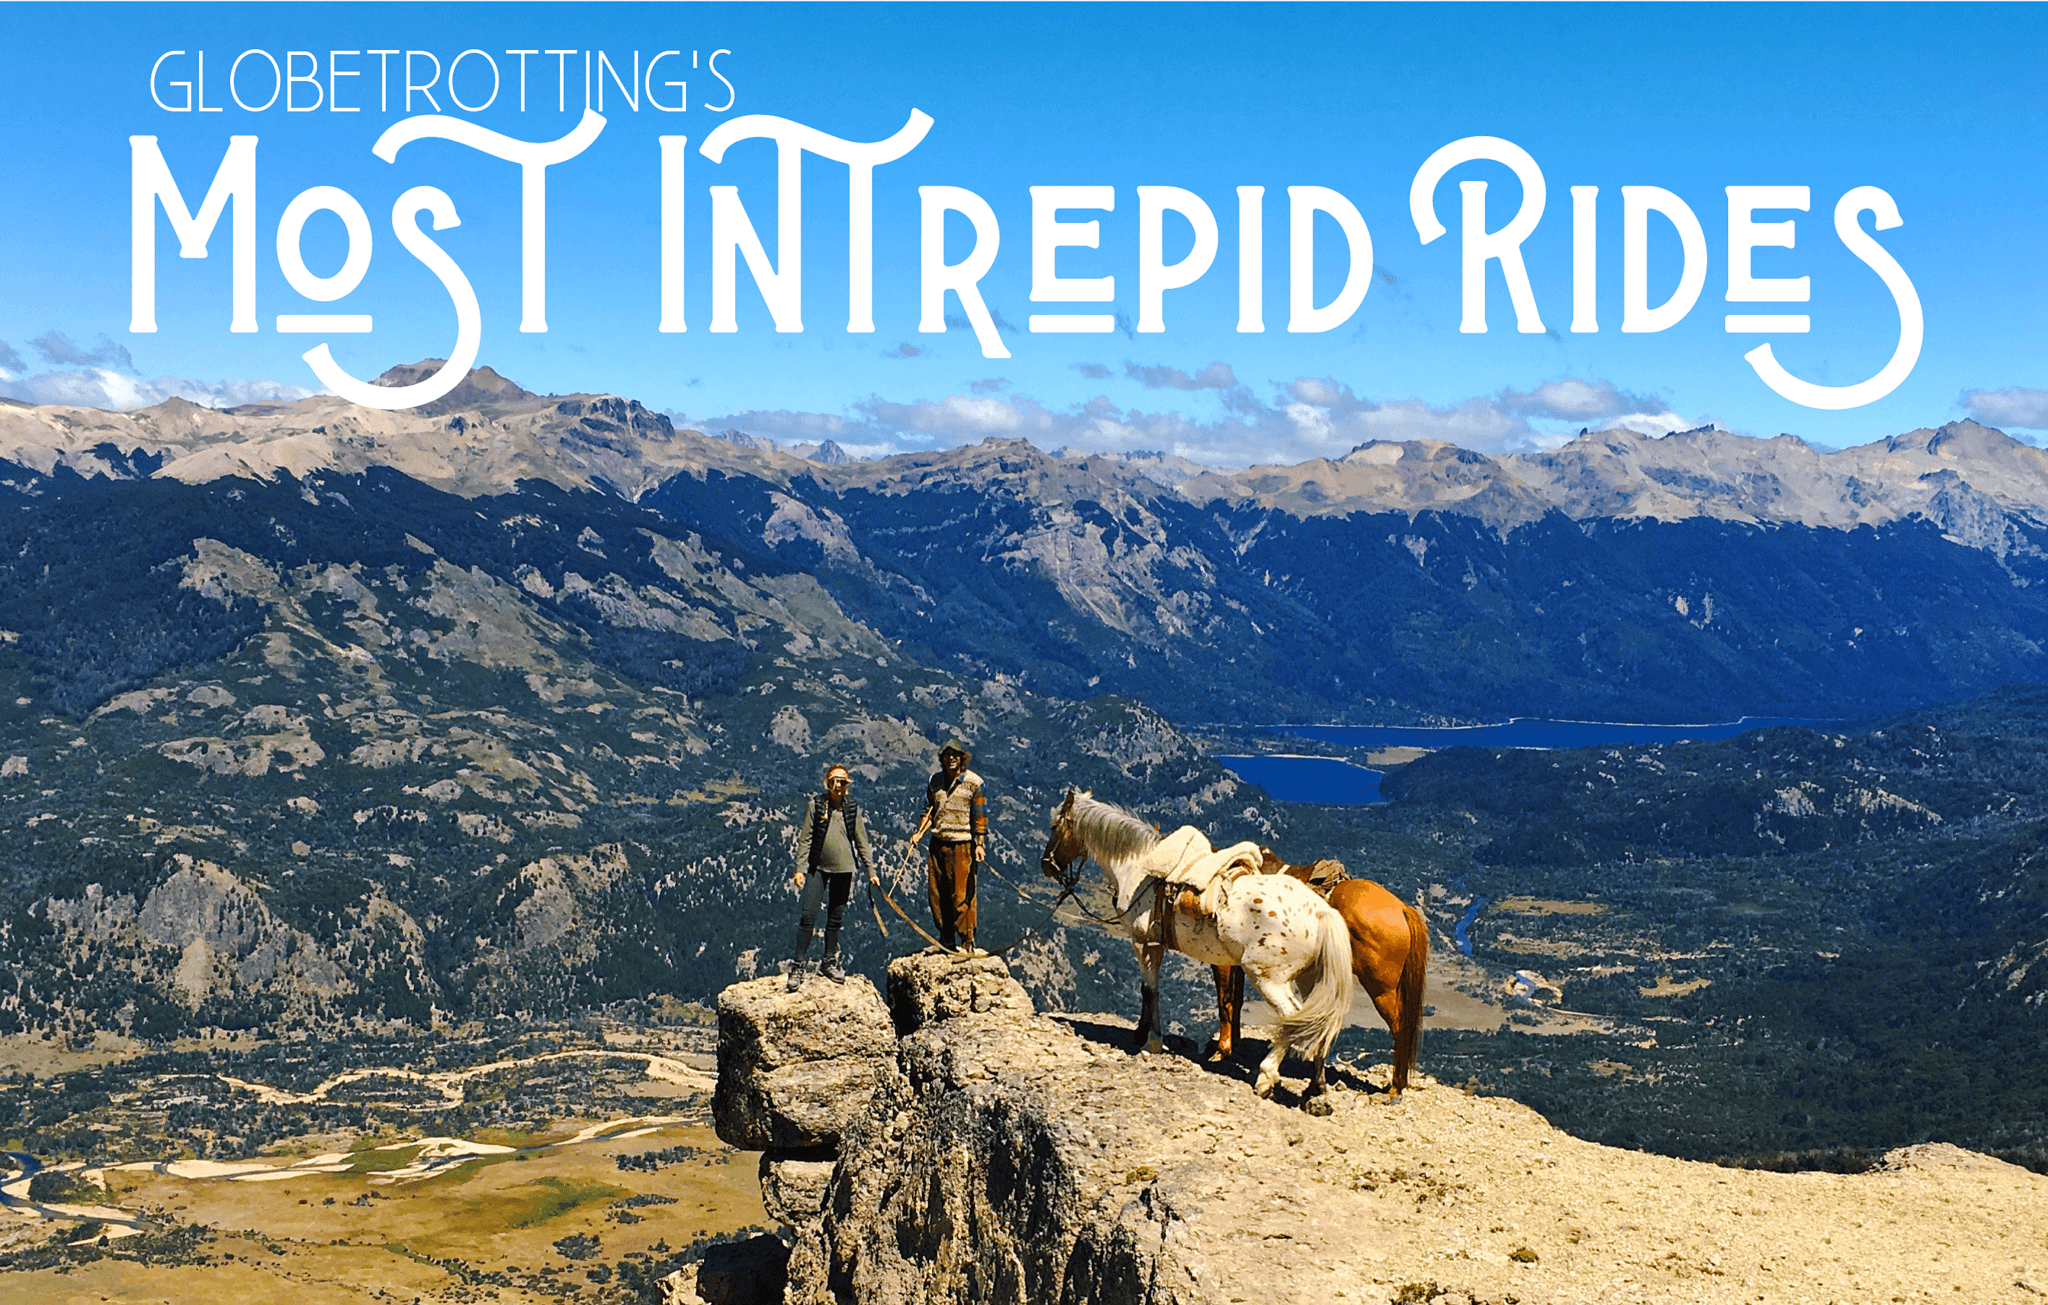 Globetrotting's Most Intrepid Rides - Globetrotting horse riding holidays